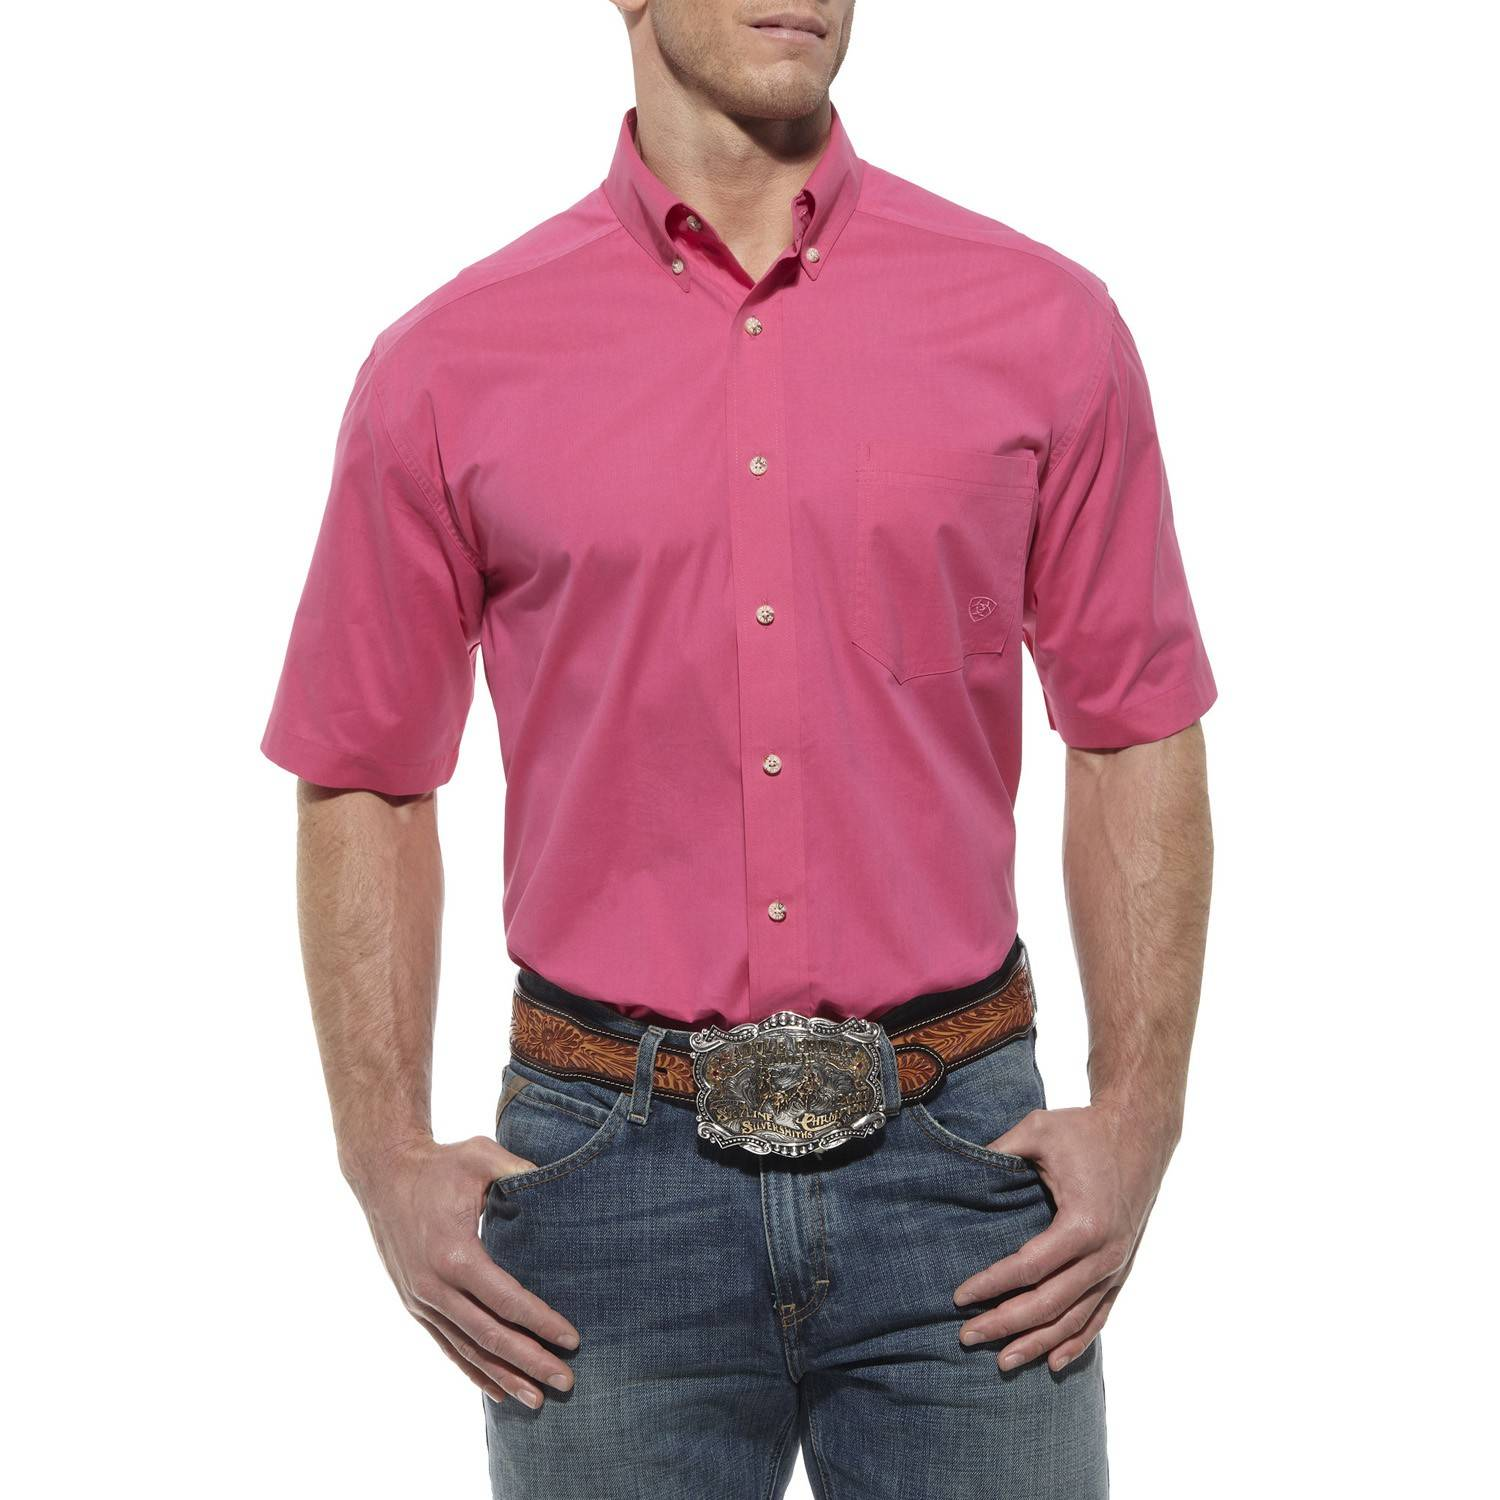 Ariat Men's Solid Performance Short Sleeve Poplin Shirt - Hot Pink